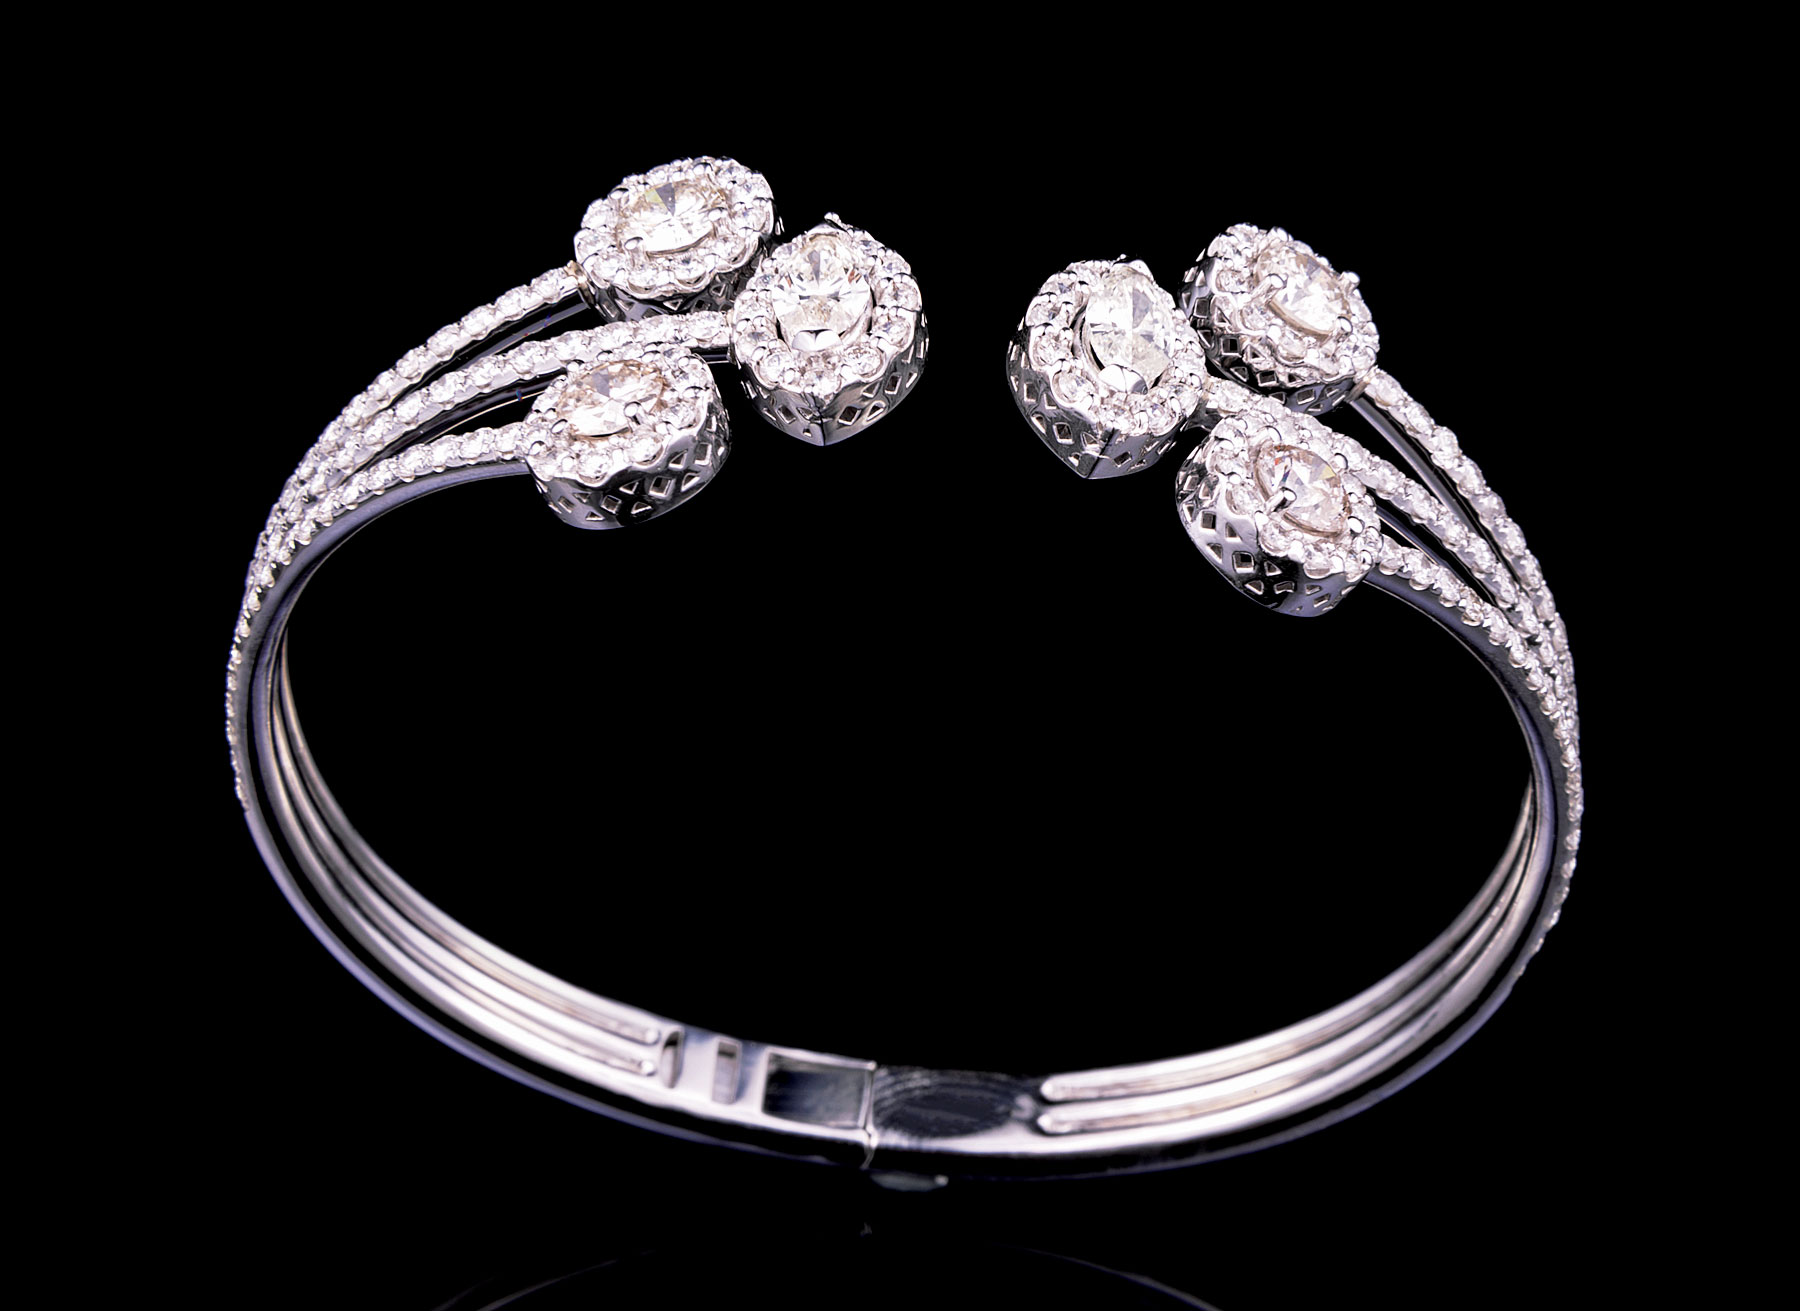 Lot 598 - 18 kt. White Gold and Diamond Cuff/Bangle , 2 marquise cut diamonds and approx. 180 round